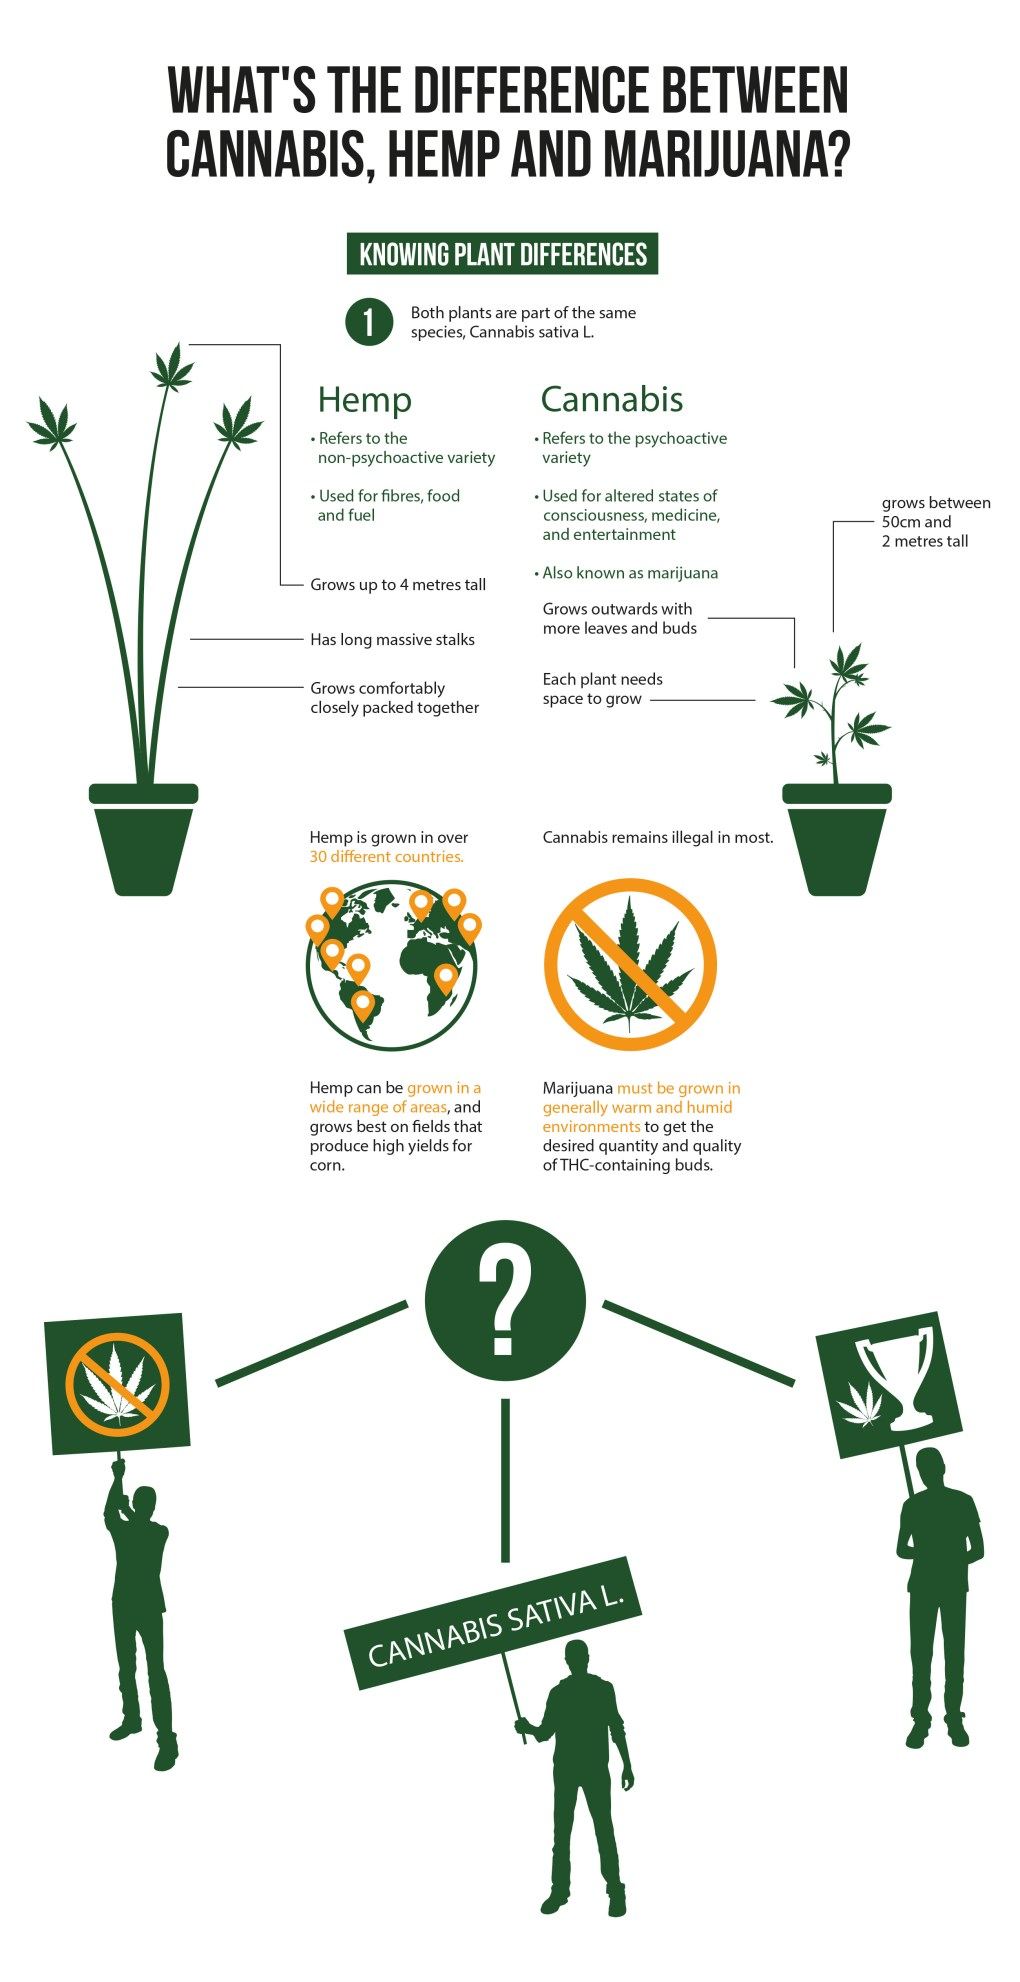 "An infographic explaining the differences between Cannabis, Hemp, and Marijuana. A simple illustration in solid green shows a potted hemp plant on the far left. A list of bullet points as well as coordinating lines break down the characteristics of a hemp plant. To the right is a small illustrated, inn solid green, potted cannabis plant. This too has a list of information explaining the plant. In the centre of the infographic is an image of a globe with orange map indicators showing the different countries hemp is grown in. To the right of the globe is an icon of a cannabis leaf with an orange circle and a slash through it. Above is written that ""Cannabis remains illegal in most"". At the bottom of the image a question mark is written with negative white space in a green circle. From the question mark are three lines pointing to the bottom left, bottom middle, and bottom right. Three silhouette figures are represented holding different signs: an anti cannabis poster, a cannabis sativa L. sign, and a cannabis leaf beside a trophy sign."